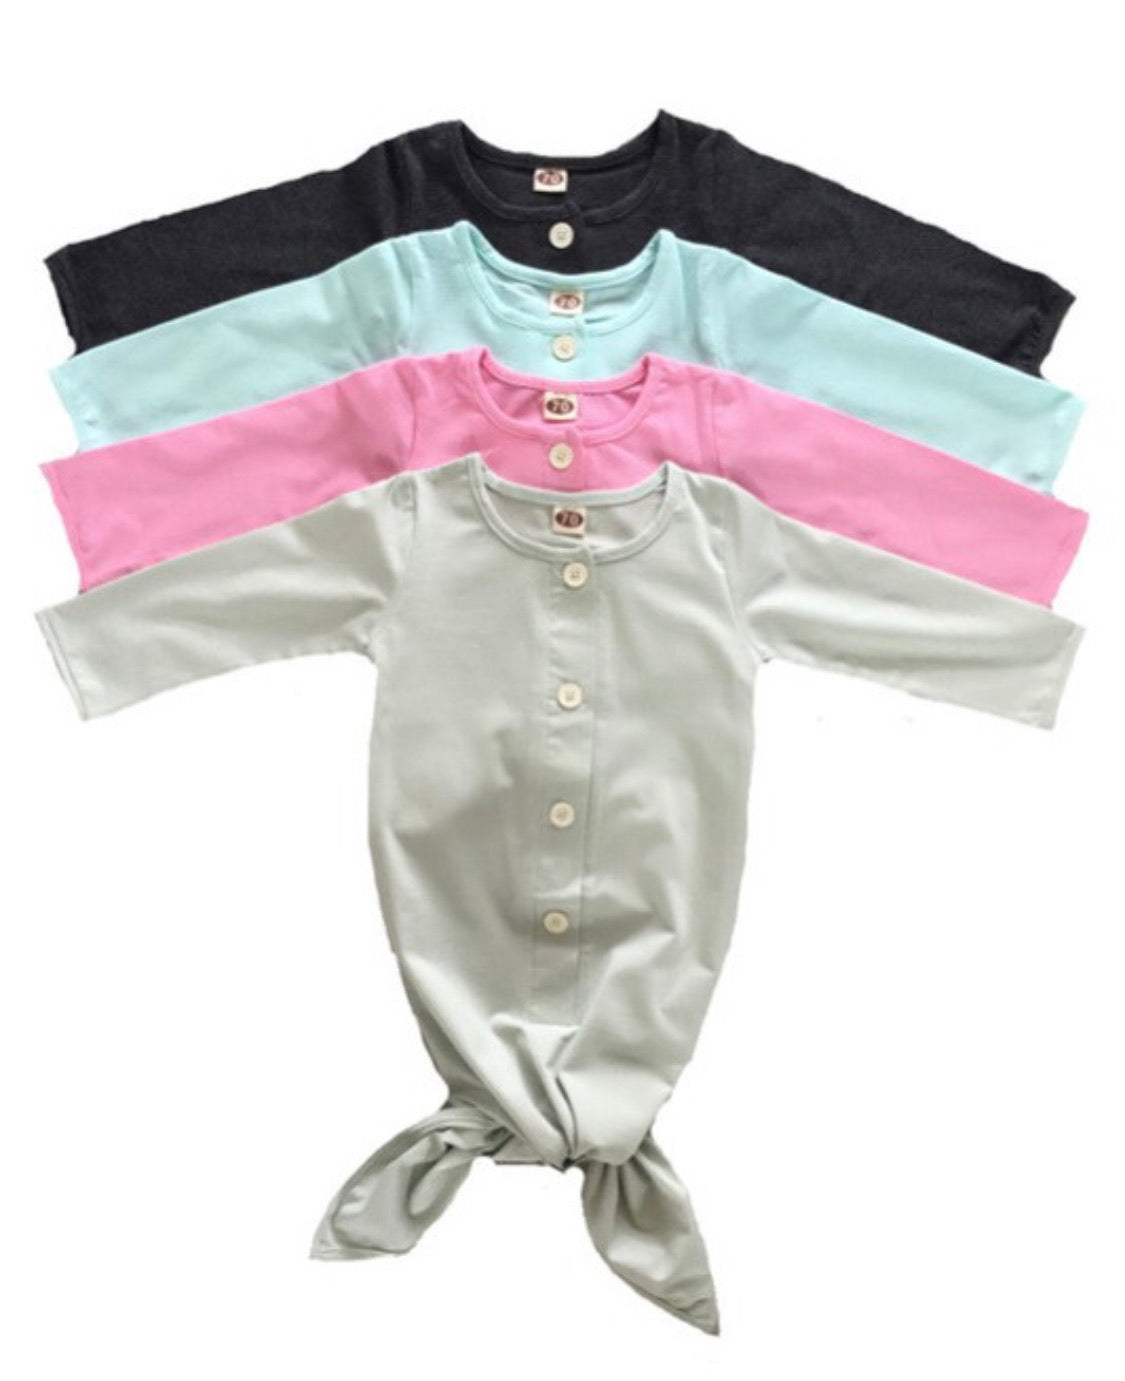 Infant sleeper gown